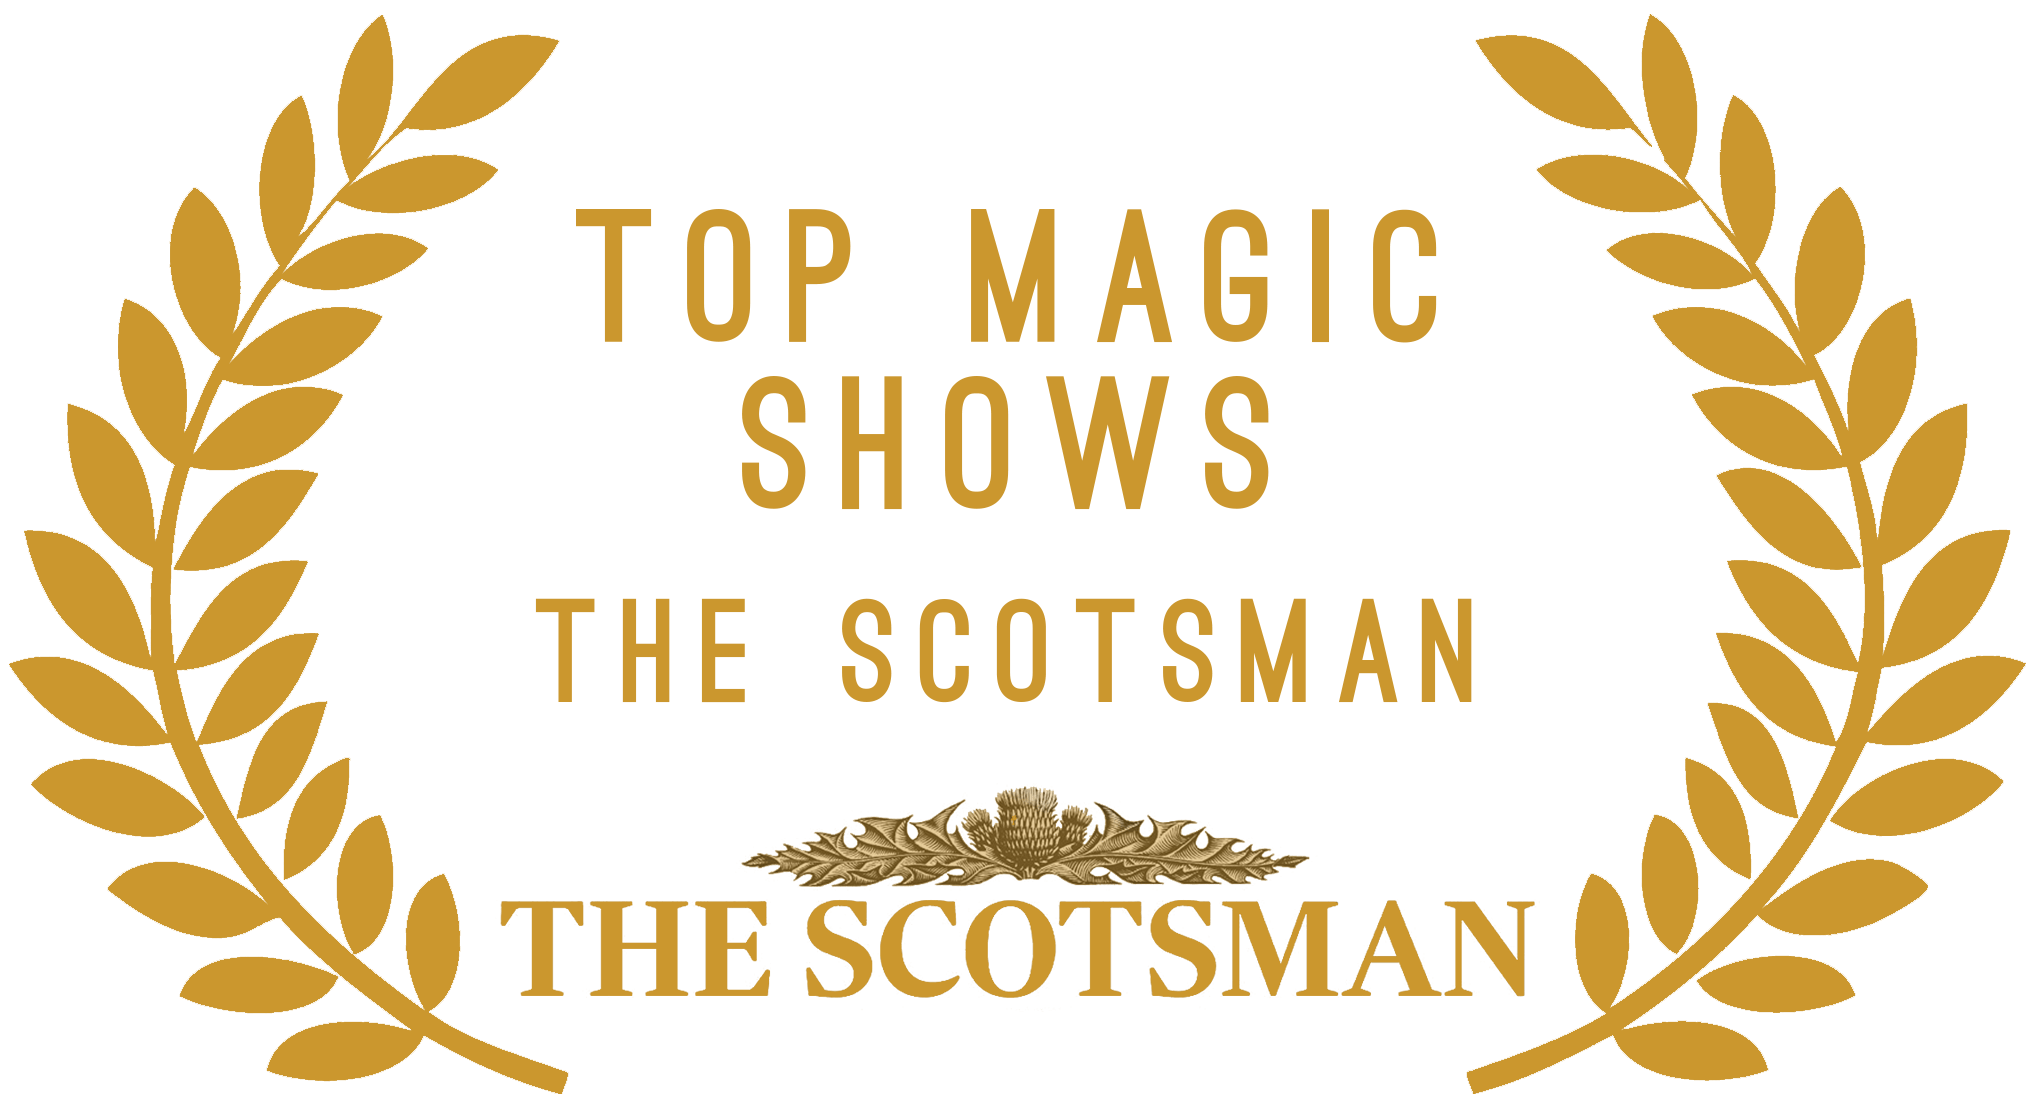 The scotsman top magic show edinburgh fringe